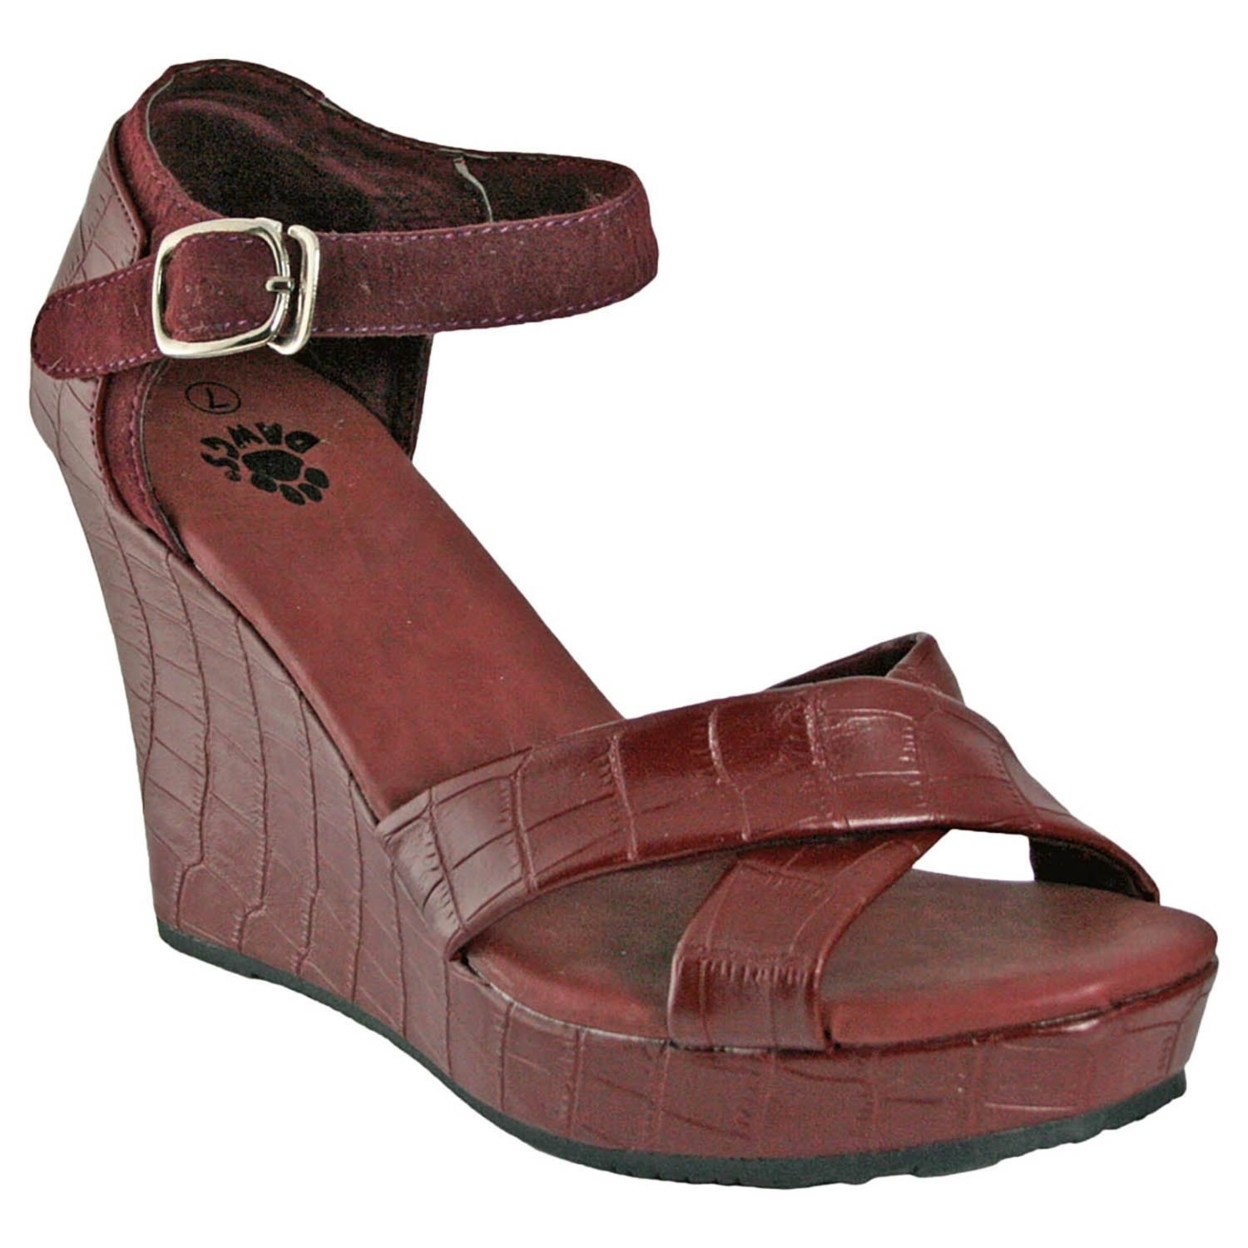 Sandals Size 8.5 Womens